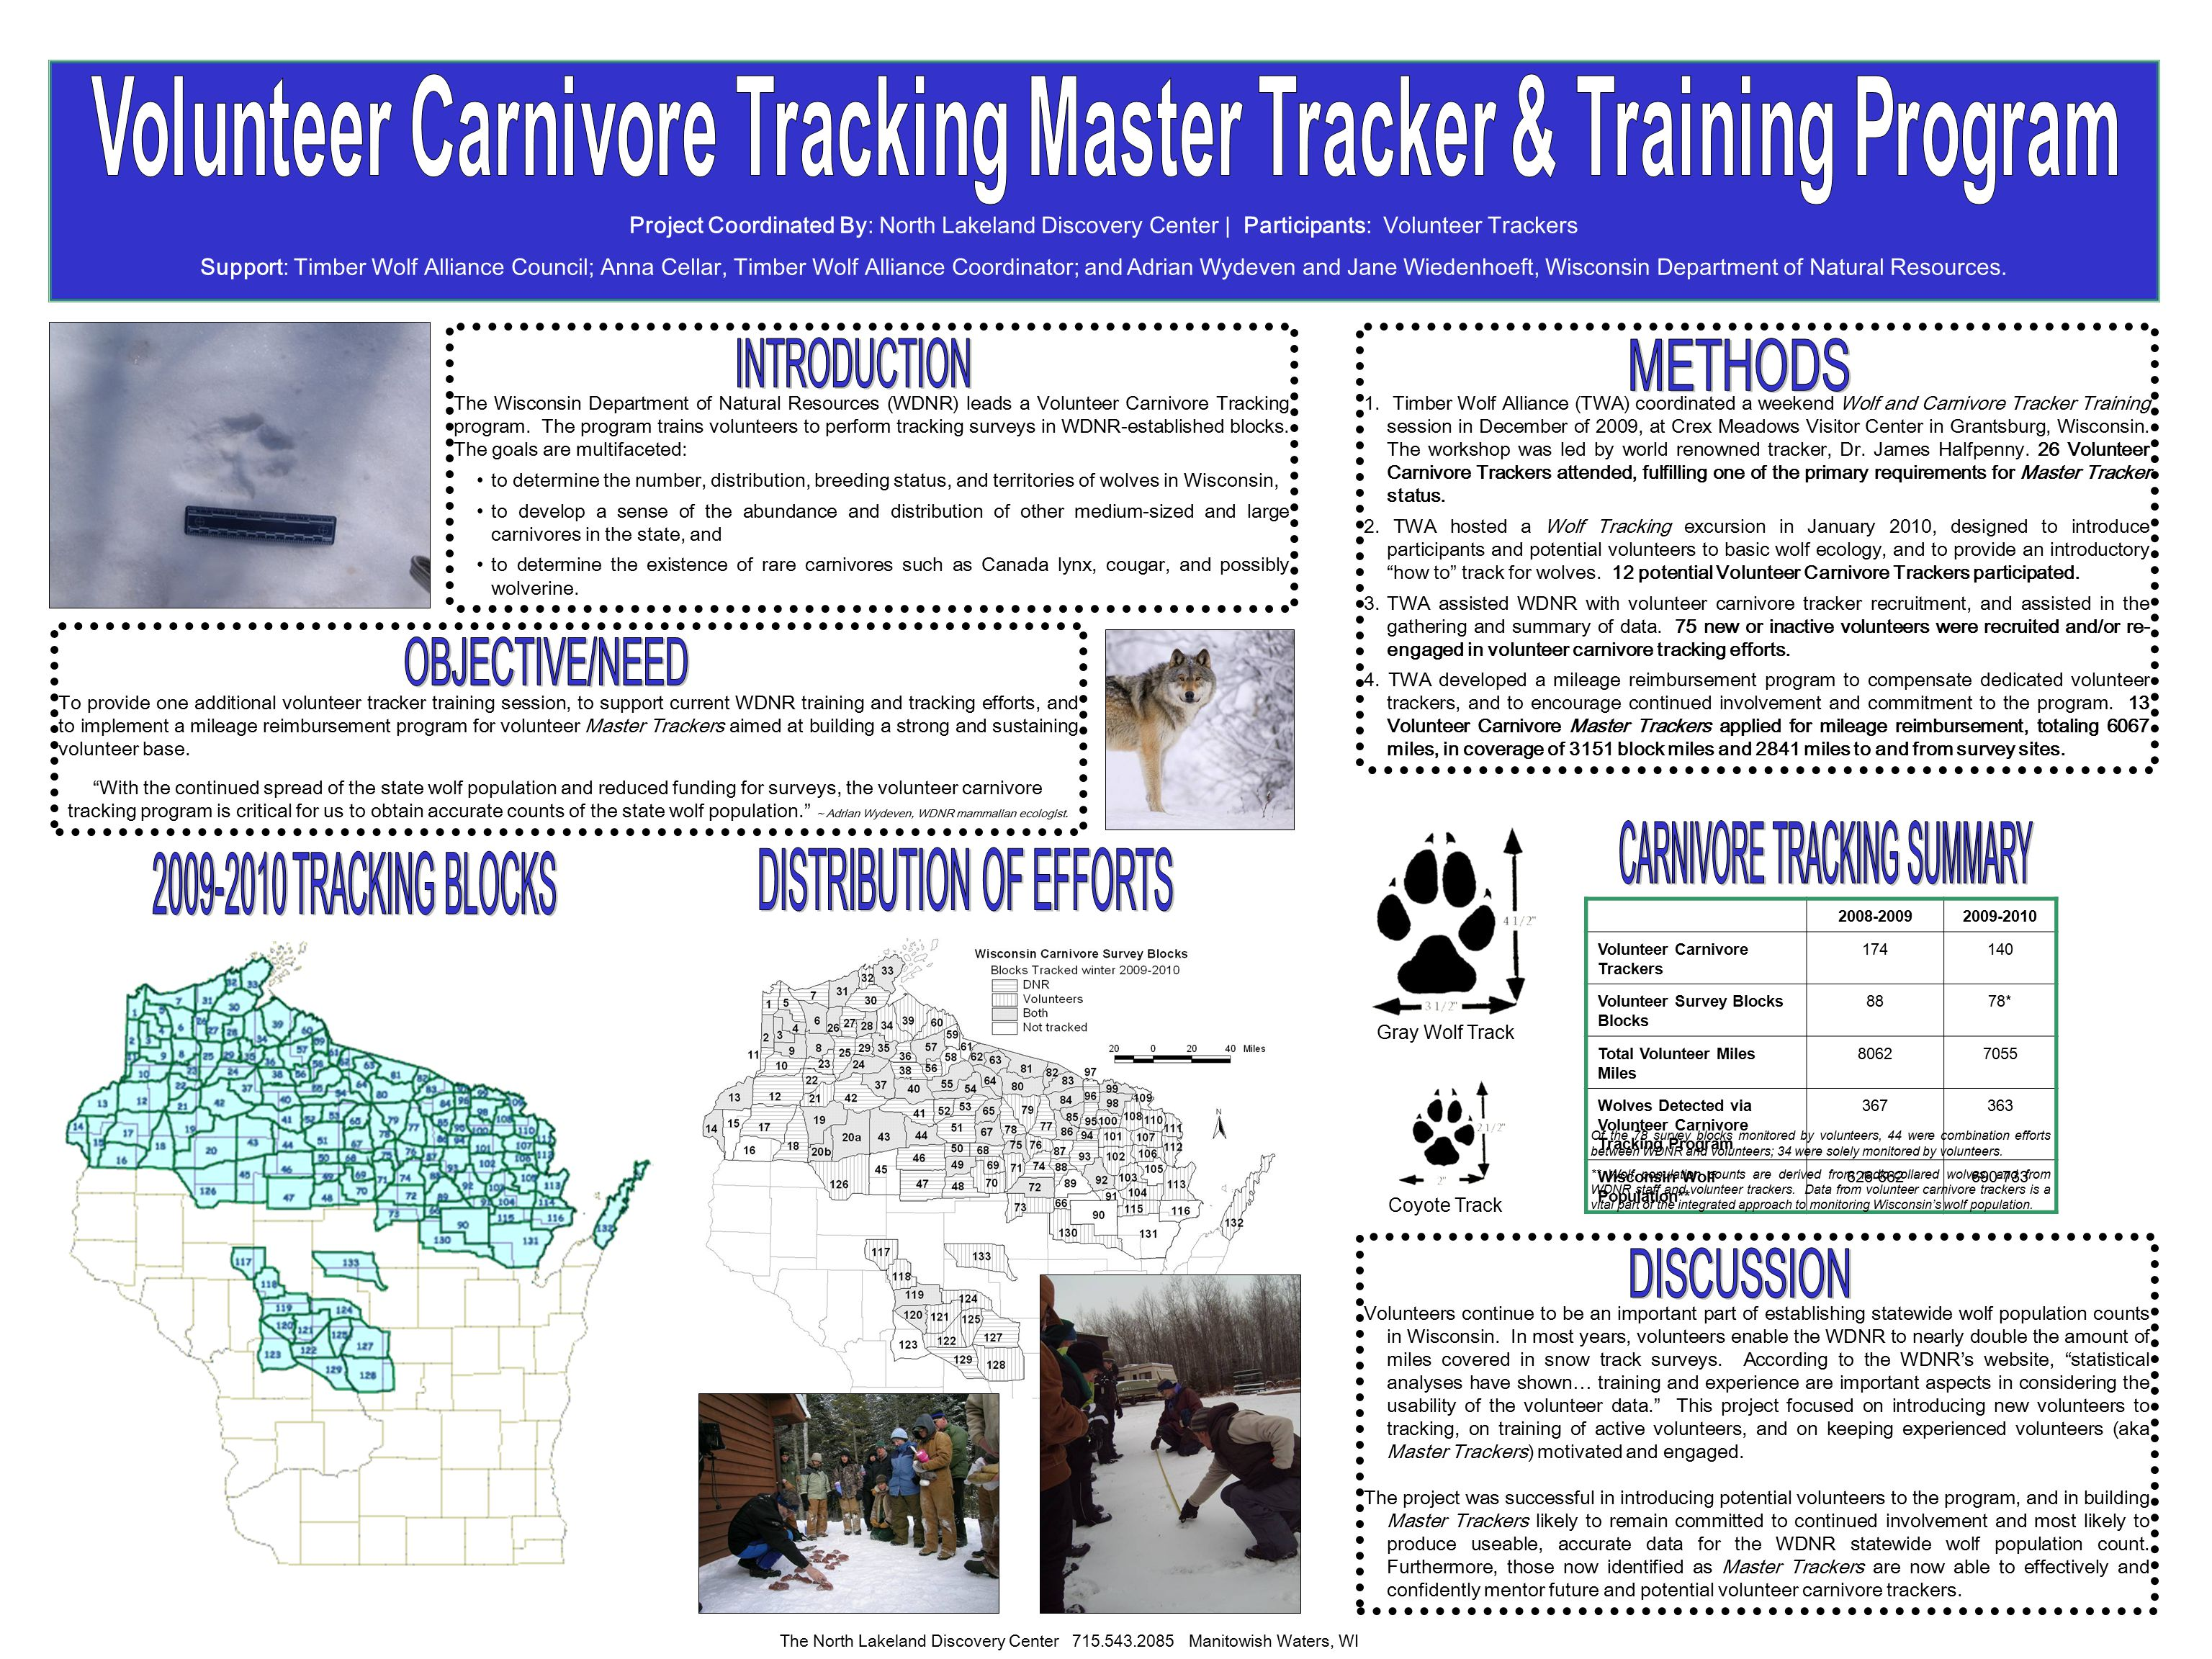 The Wisconsin Department of Natural Resources (WDNR) leads a Volunteer Carnivore Tracking program.